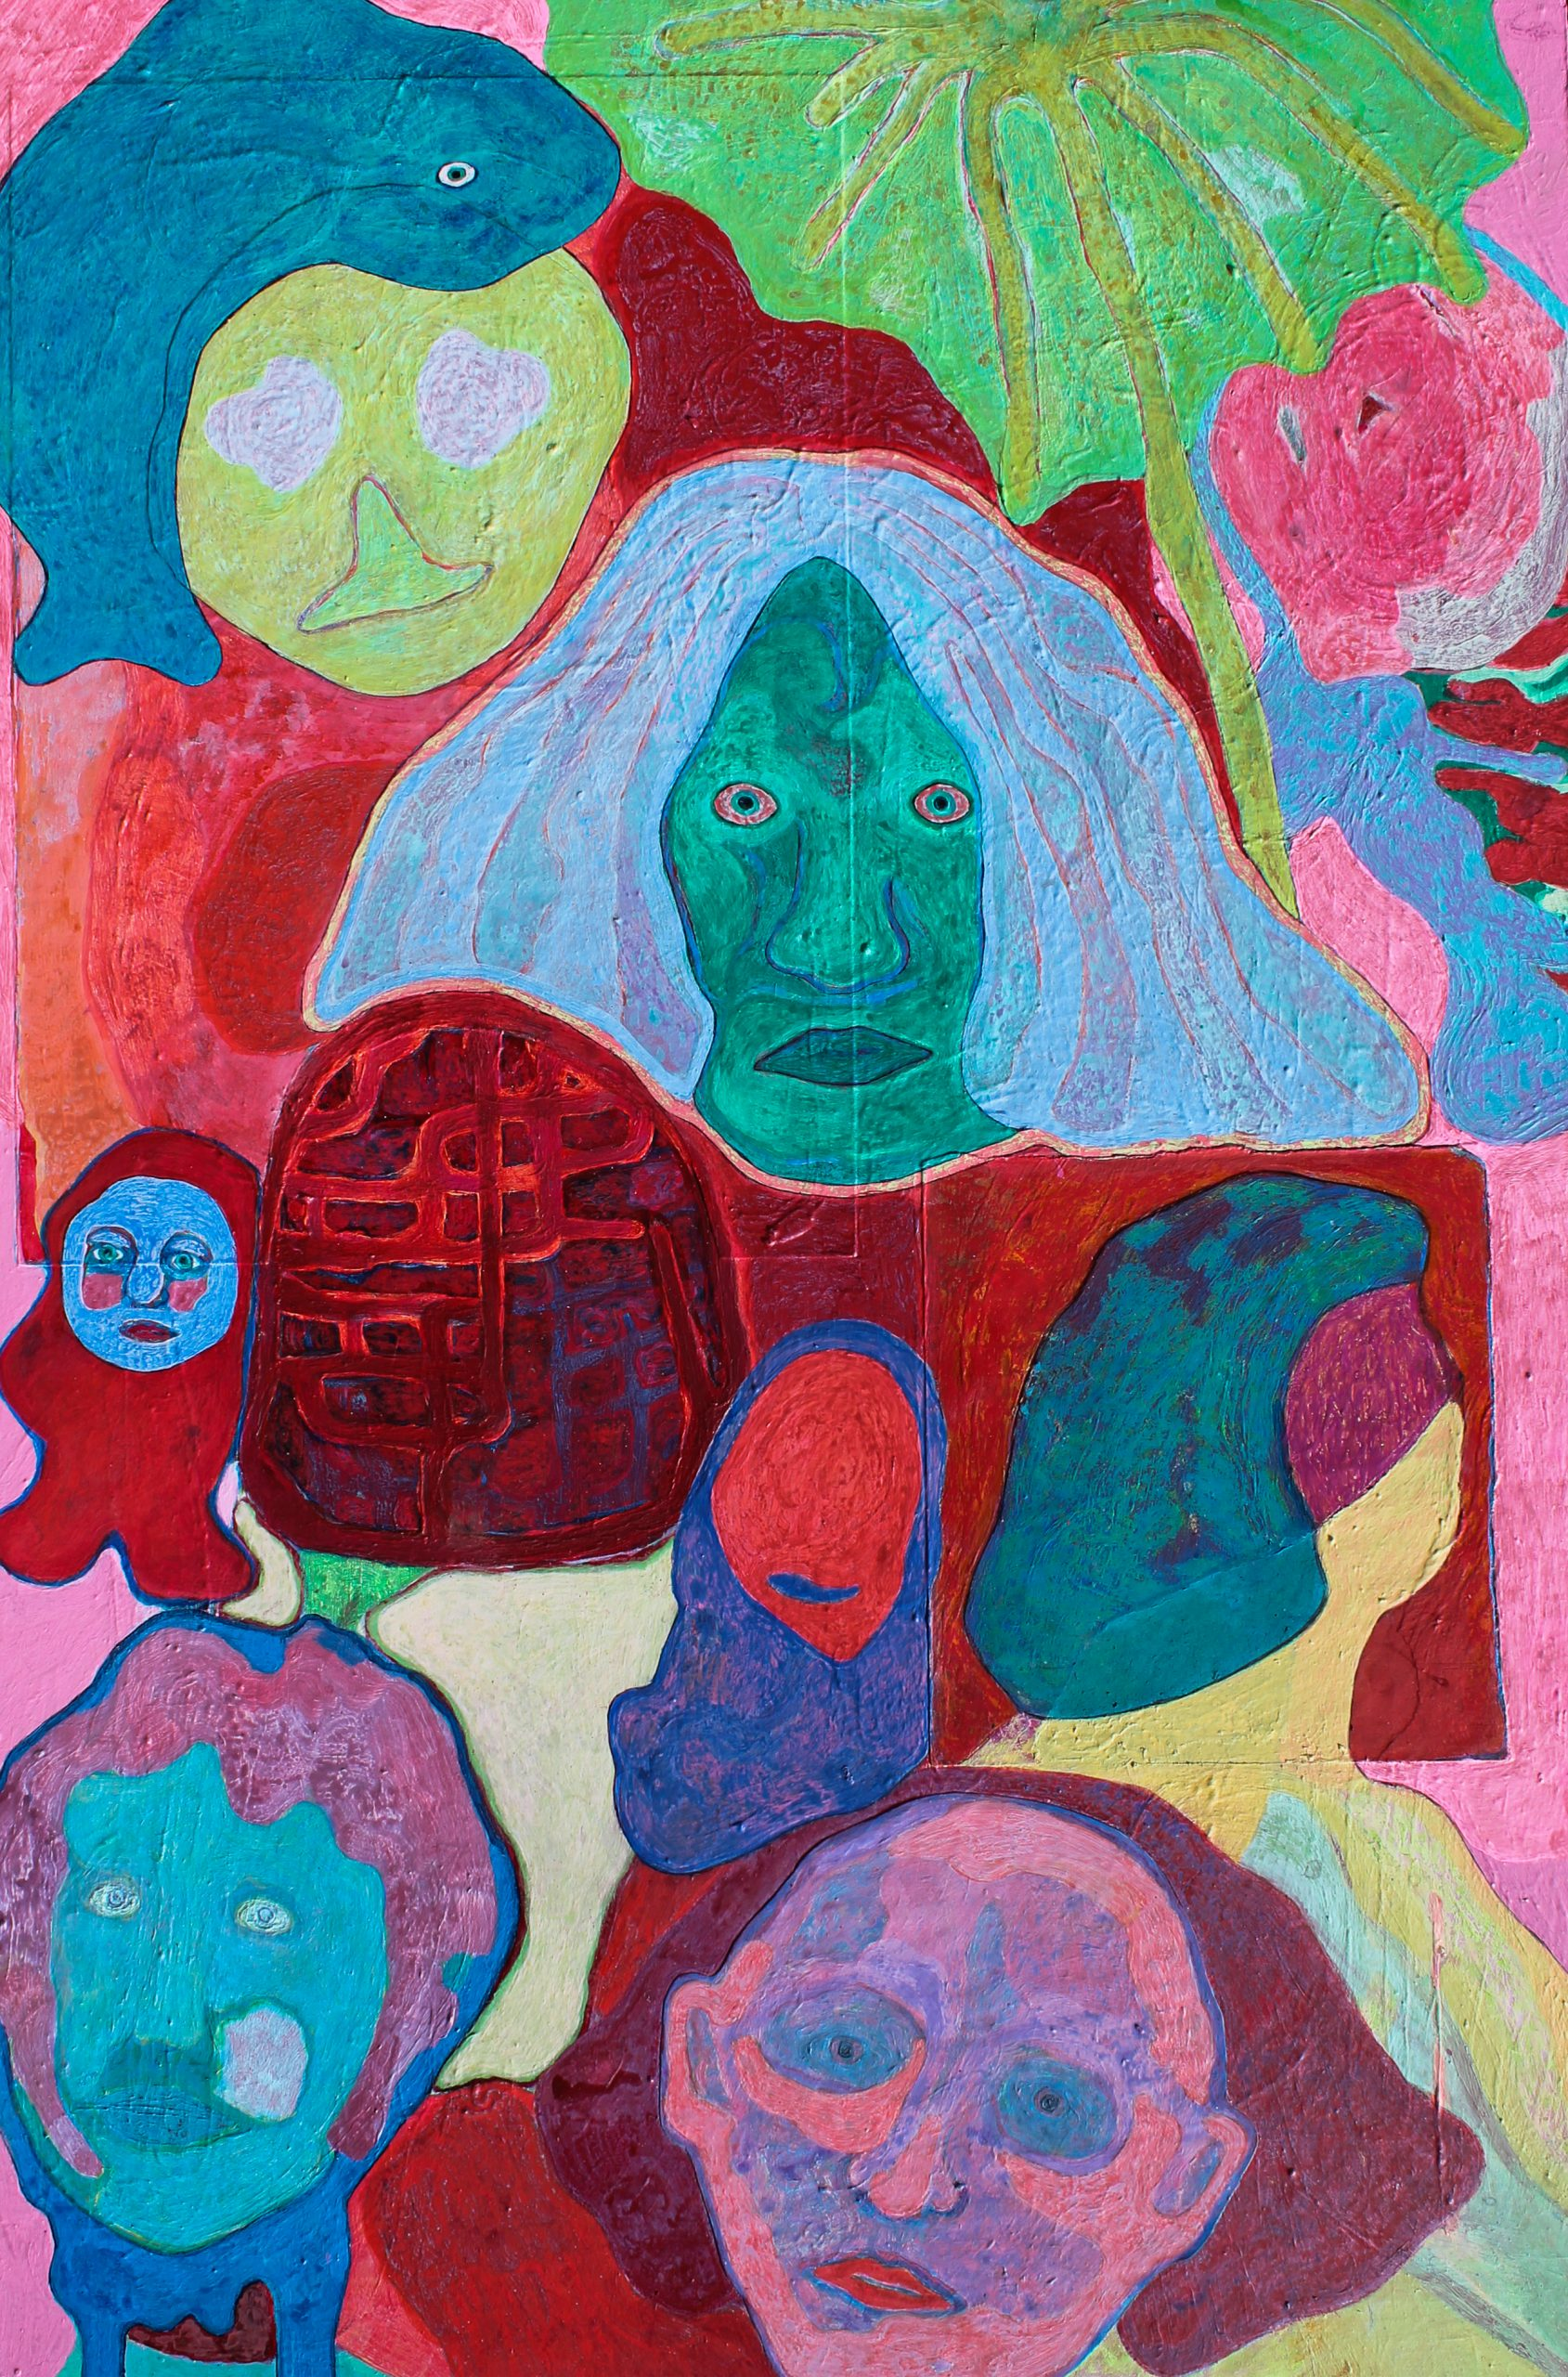 A portrait painting in dark reds, blues and pale pastel colours is filled with various faces in different colours looking directly at the viewer or turned away slightly. The central face has bright blue hair and piercing pale eyes.